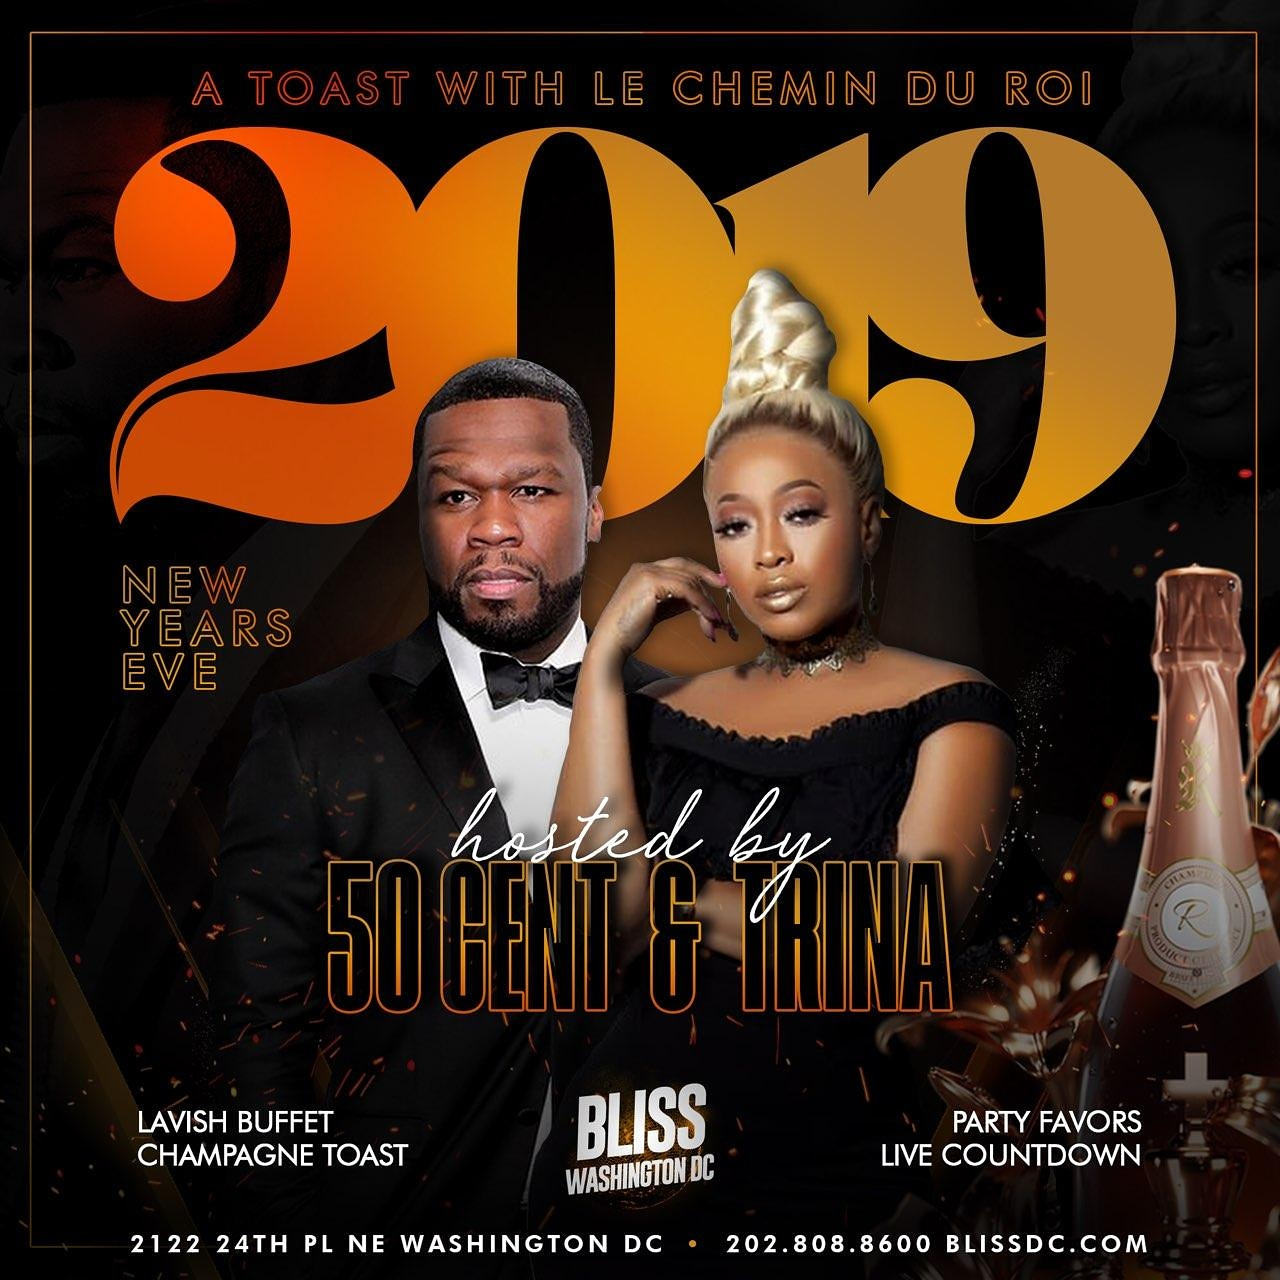 50 Cent w/ Trina - A Toast with Le Chemin Du Roi